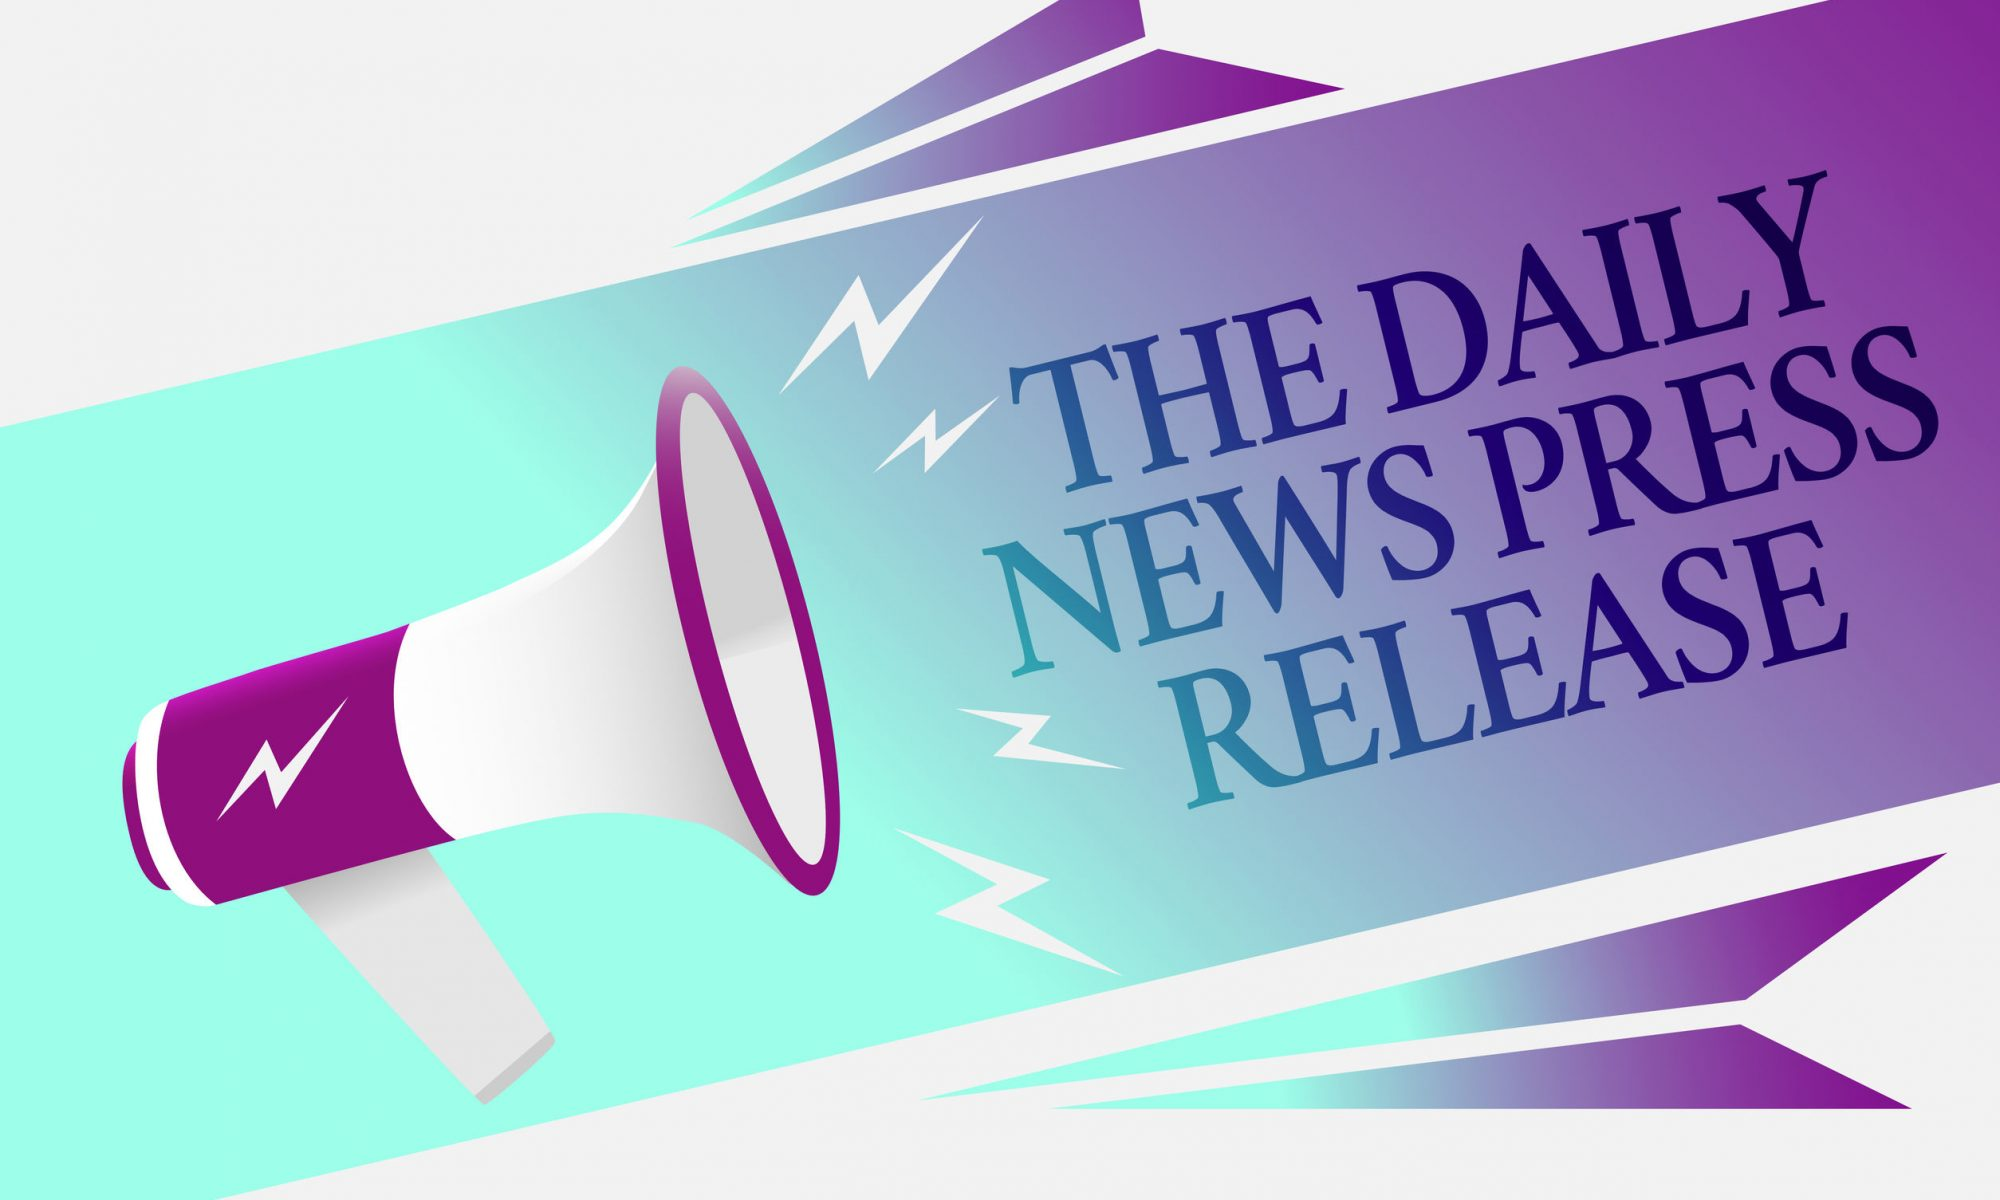 newswire press releases